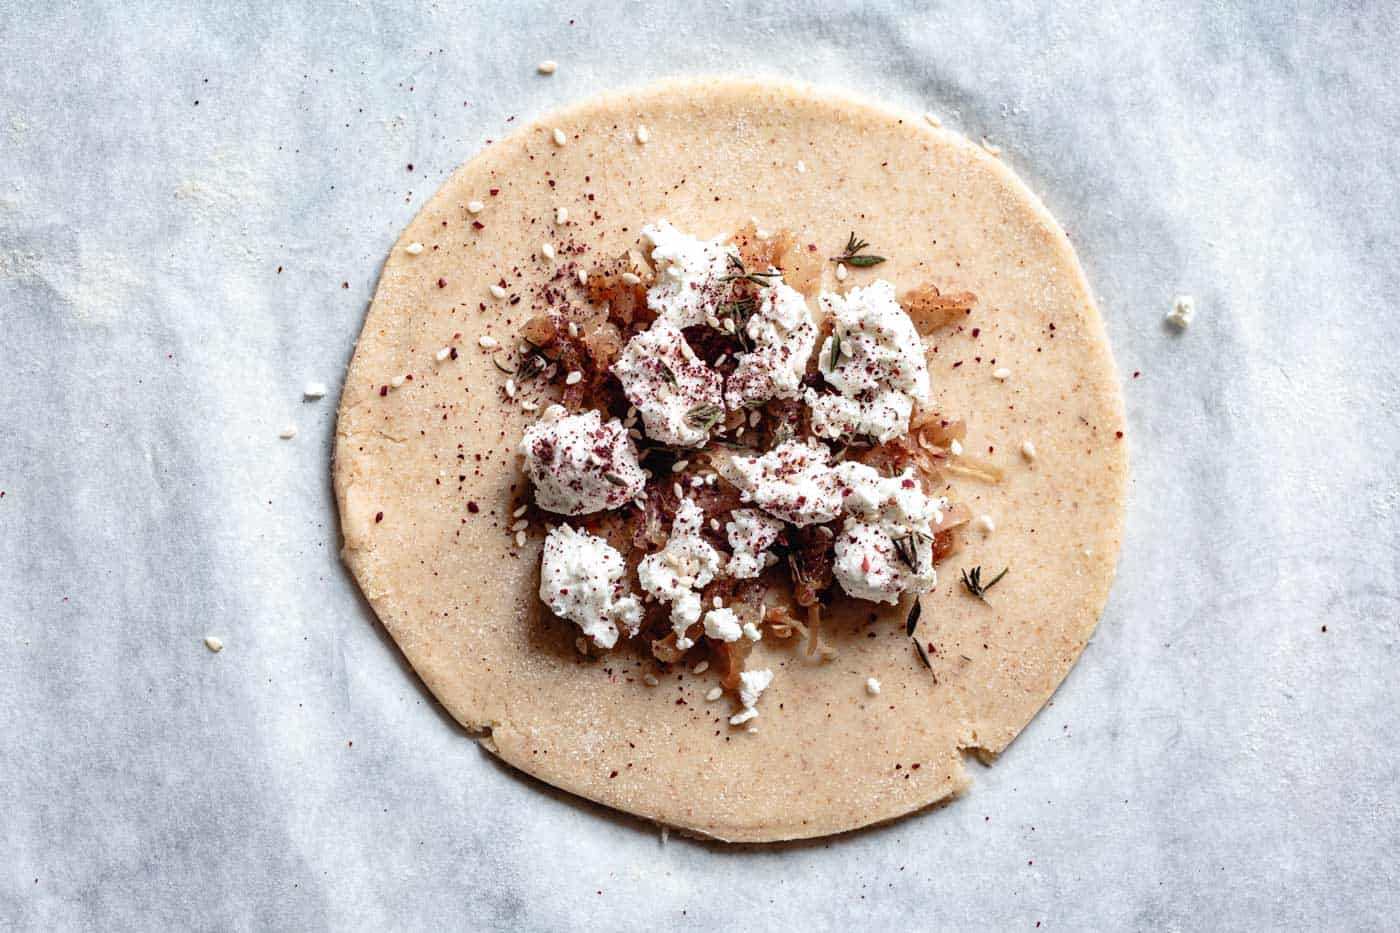 sprinkling za'atar over goat cheese